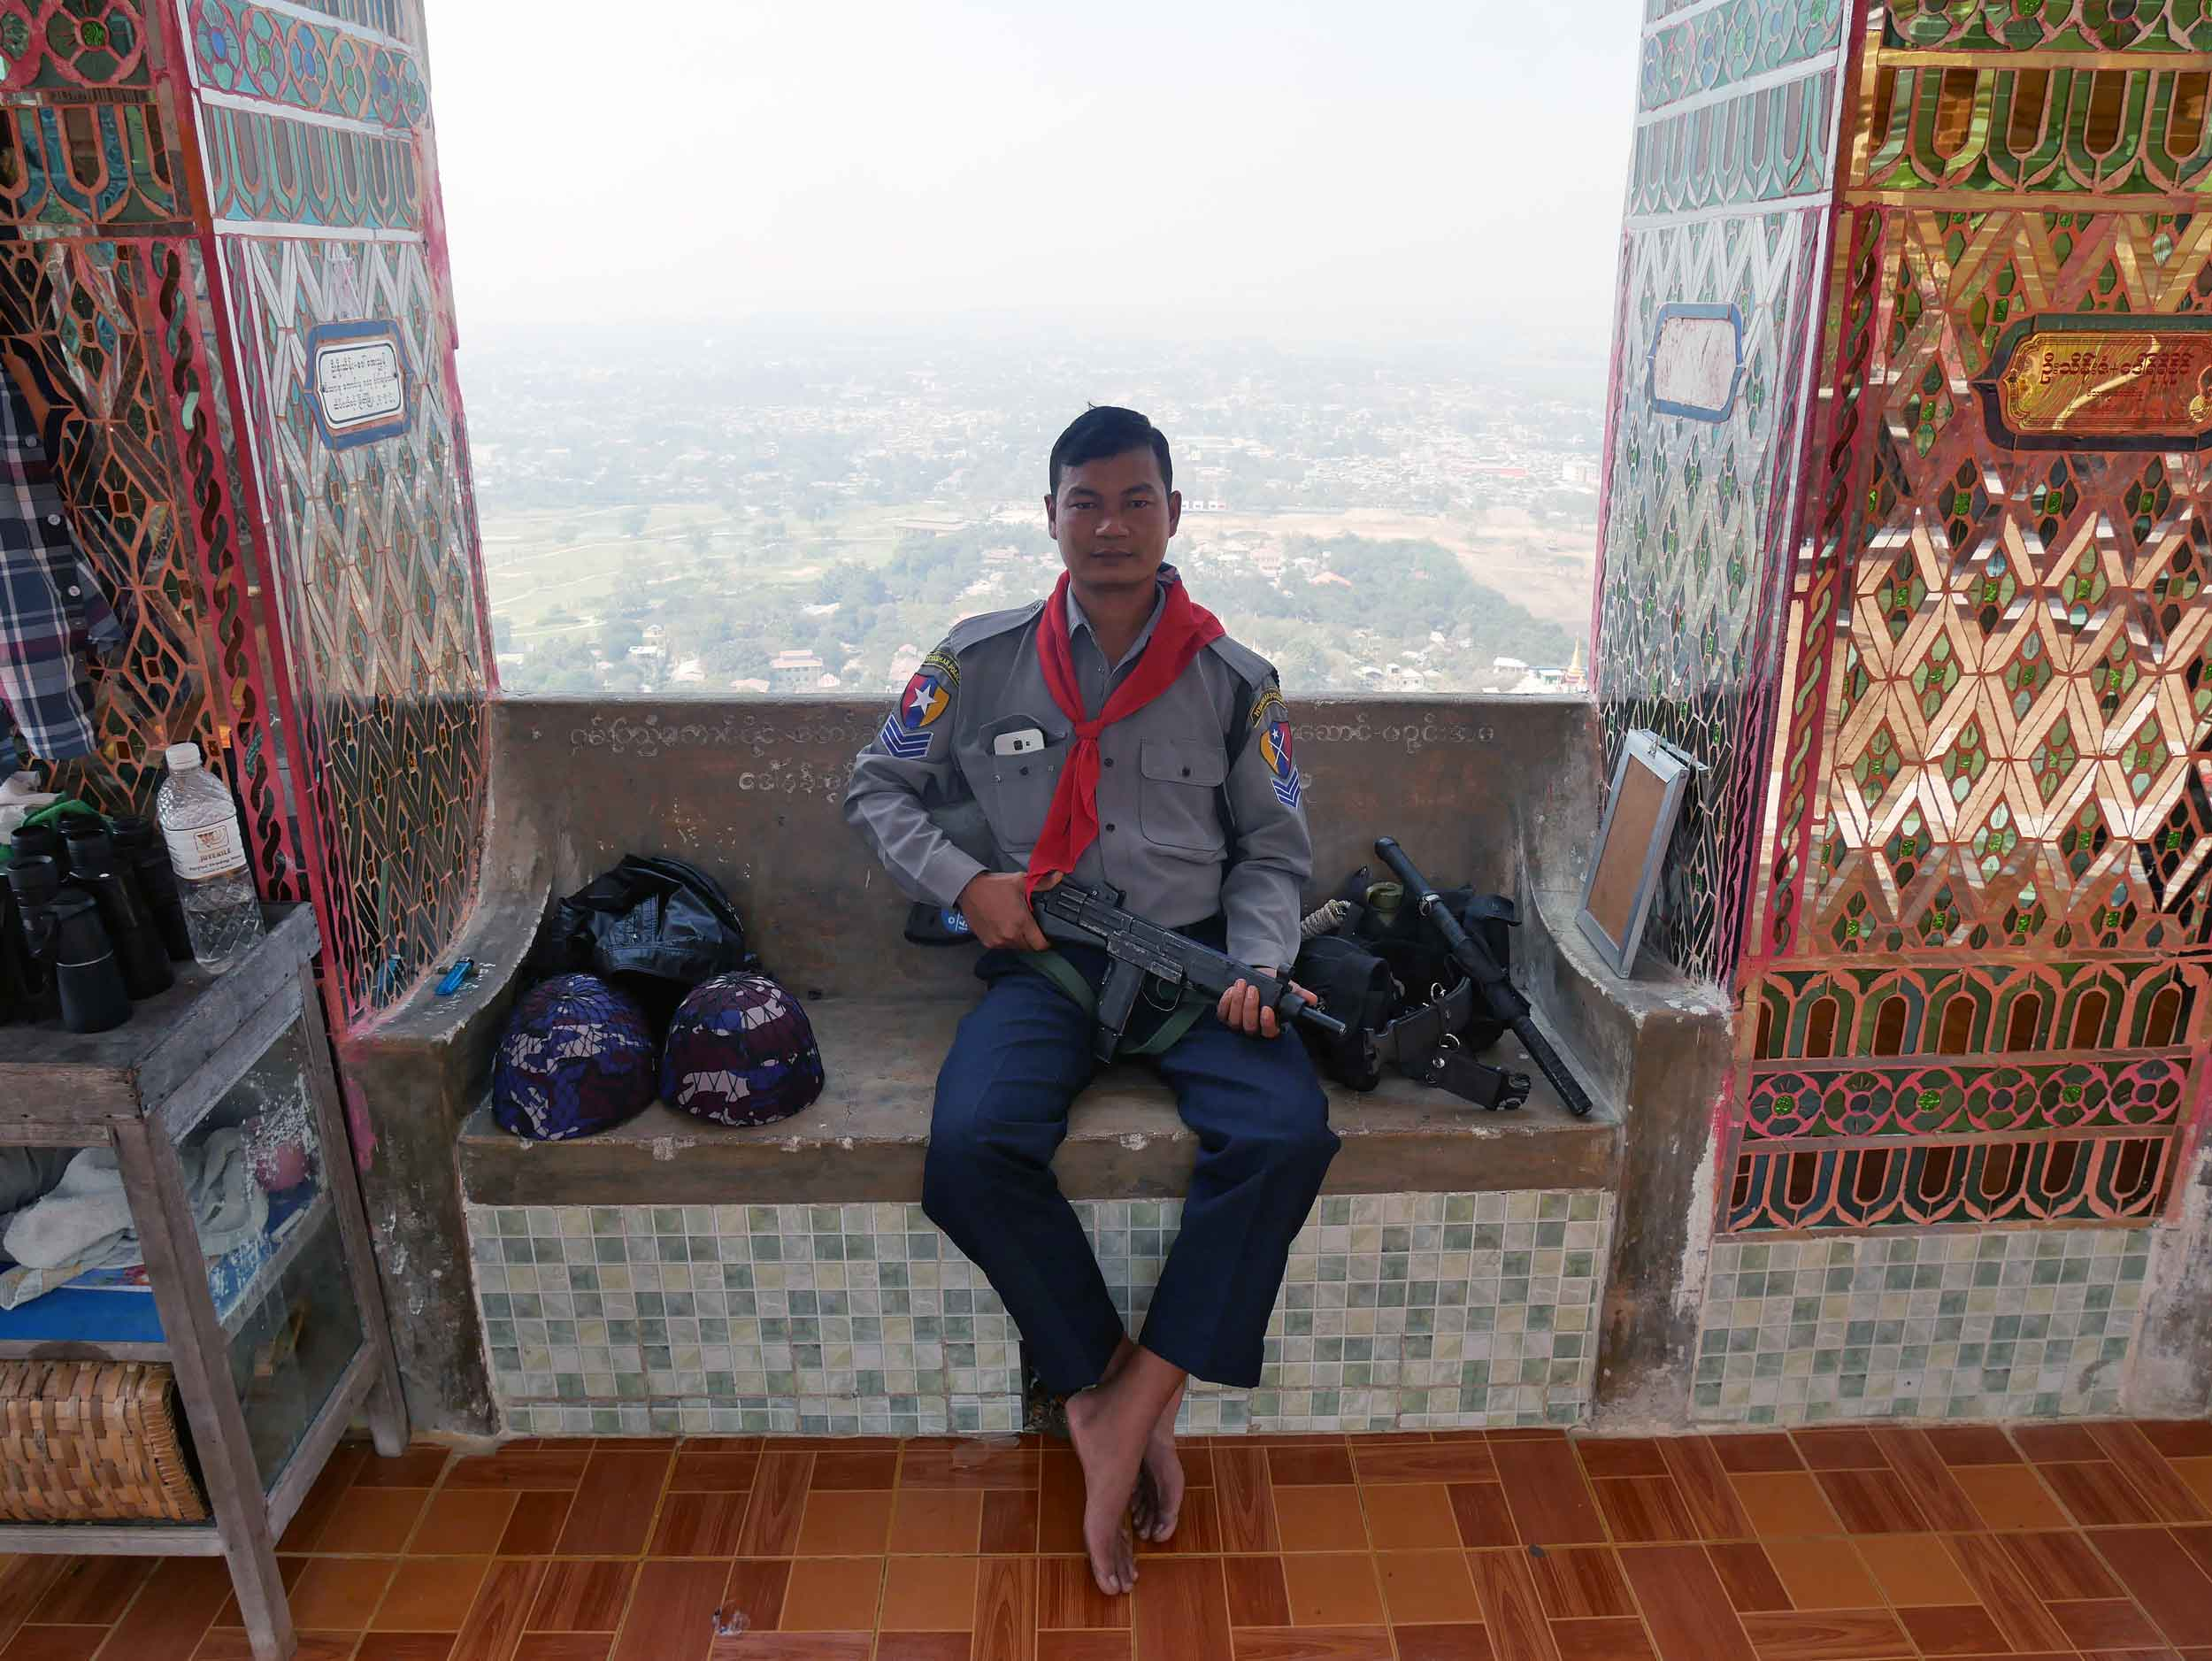 At the top, local officers took a break and also enjoyed the view (Feb 18).